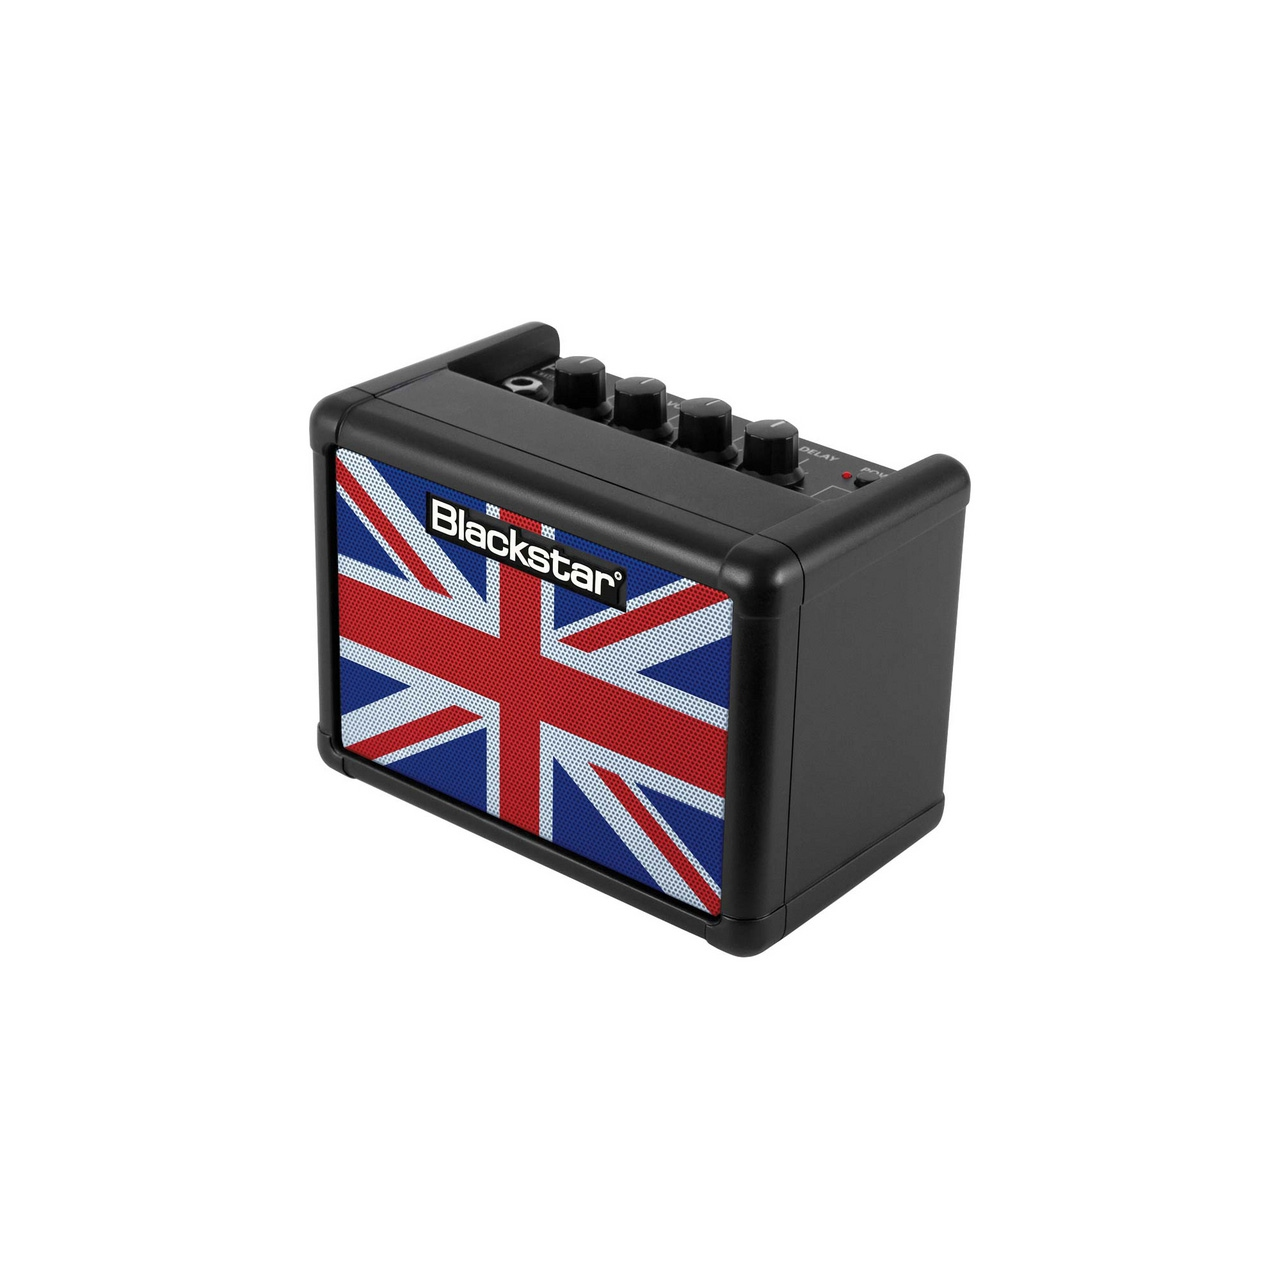 blackstar fly 3 union jack black edition no b tooth 2030 guitar amplifiers guitar combos. Black Bedroom Furniture Sets. Home Design Ideas